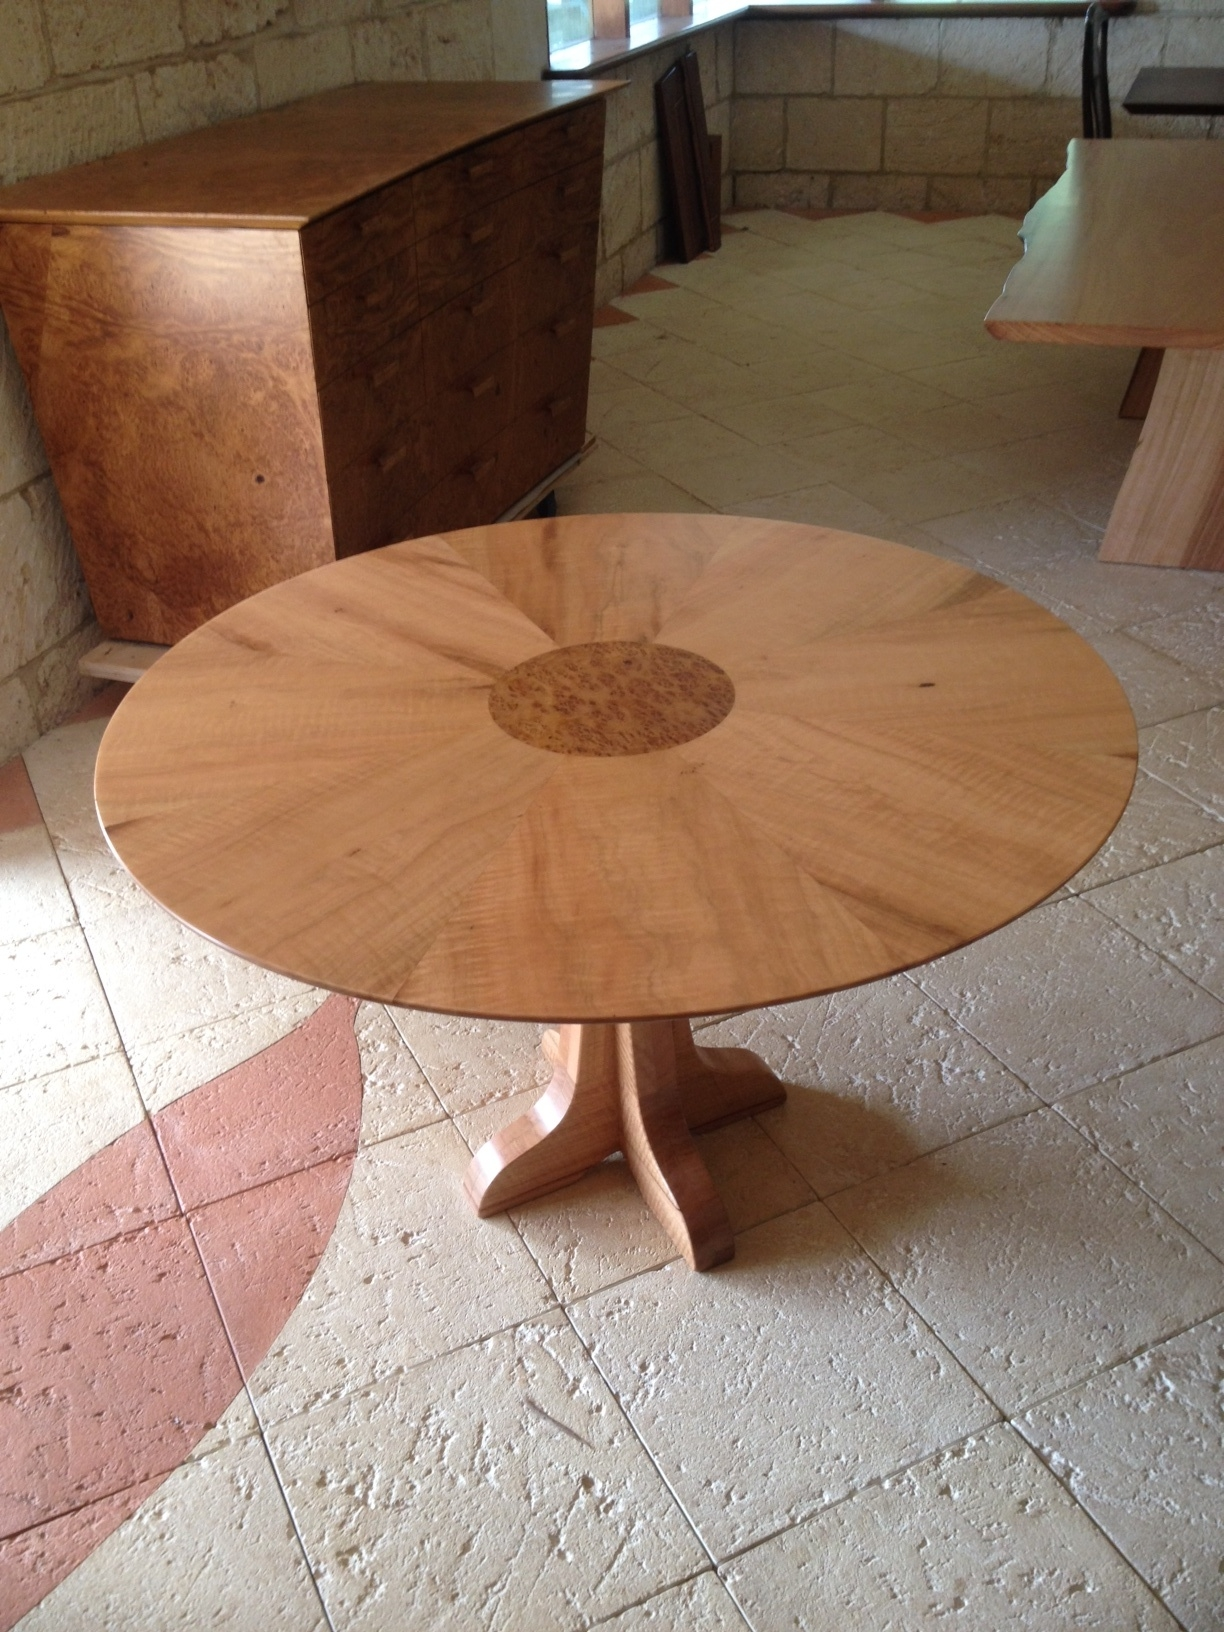 Marri Segmented Table